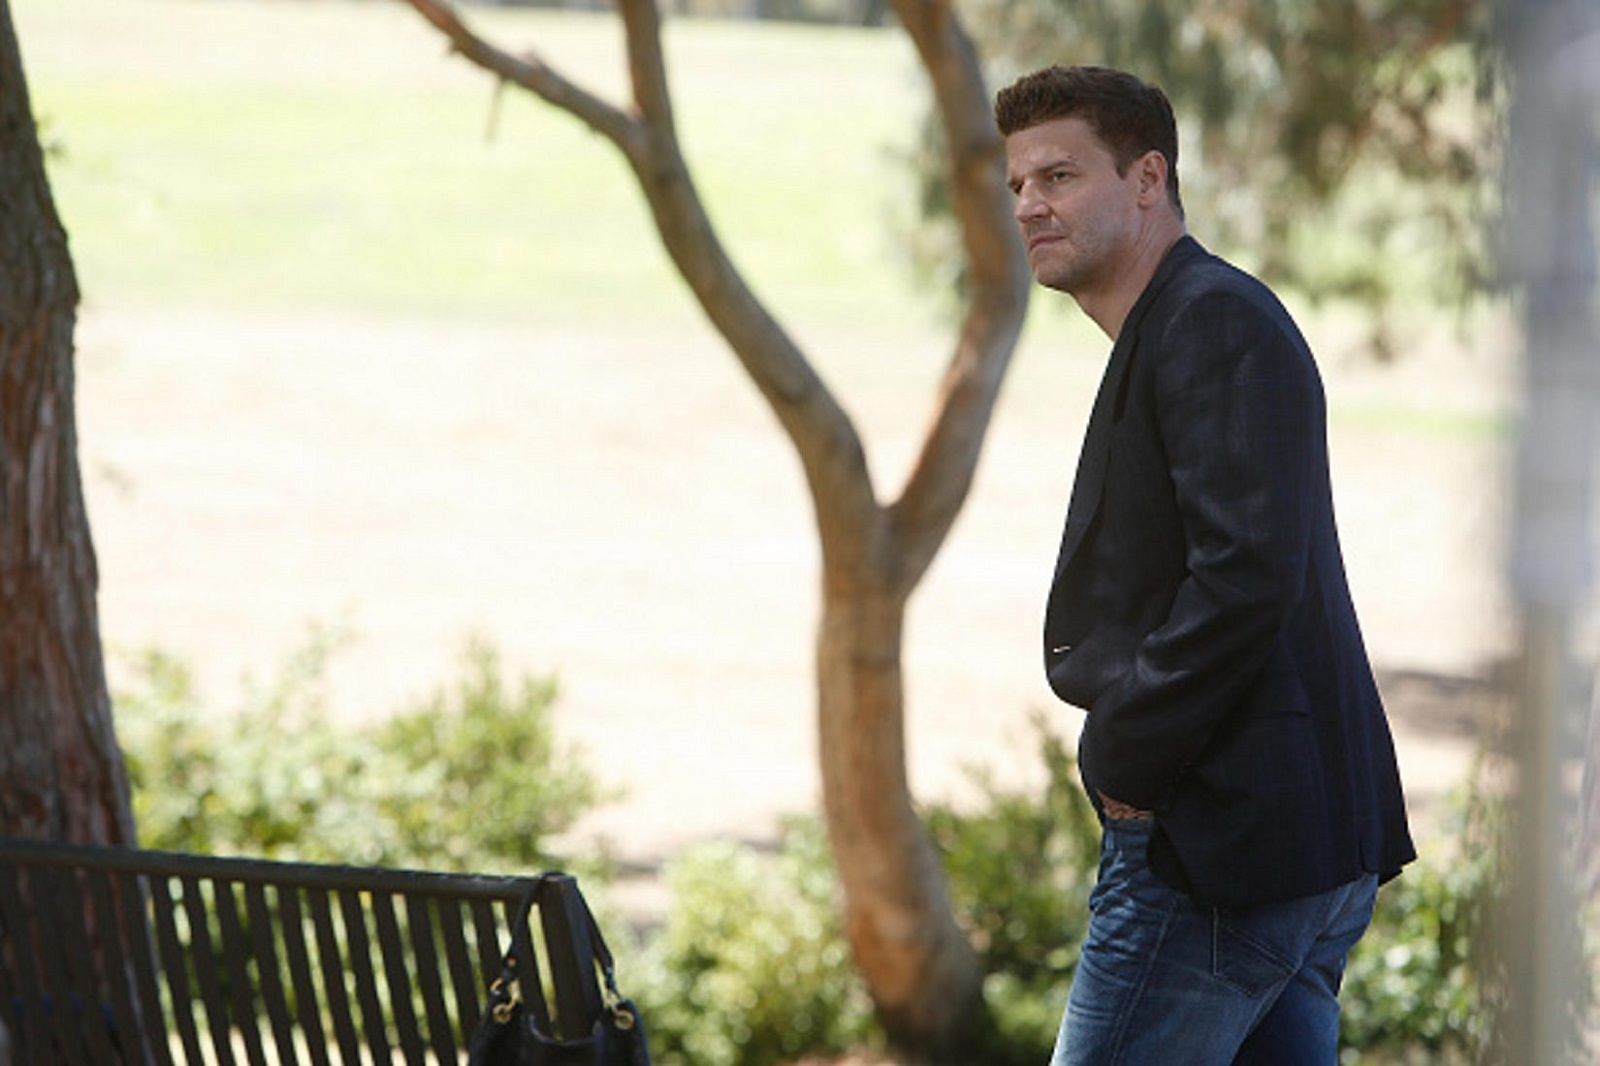 David Boreanaz in the 'The Lance to the Heart' episode of 'Bones.' After 12 years, the series is coming to an end. (Photo by FOX via Getty Images)